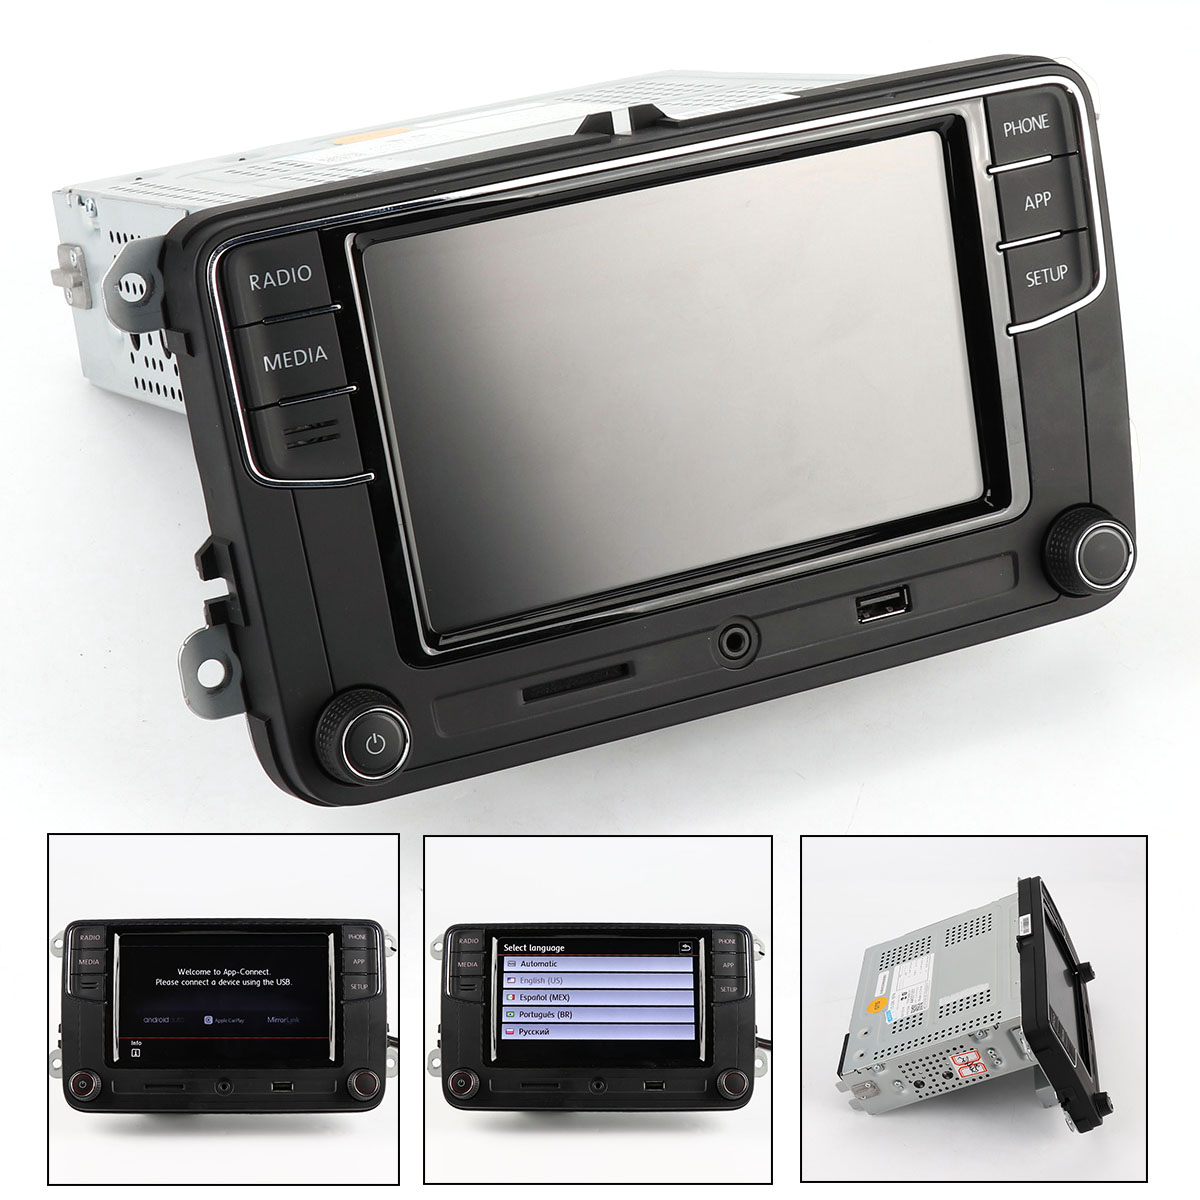 6.5'MIB Carplay Android Auto Noname Radio RCD340G For VW Tiguan Golf 5 6 MK5 MK6 Passat Polo 6RD 035 187 B 6RD035187B carplay mirror link mib carplay usb aux in socket harness for tiguan l mk2 5q0 035 726 e